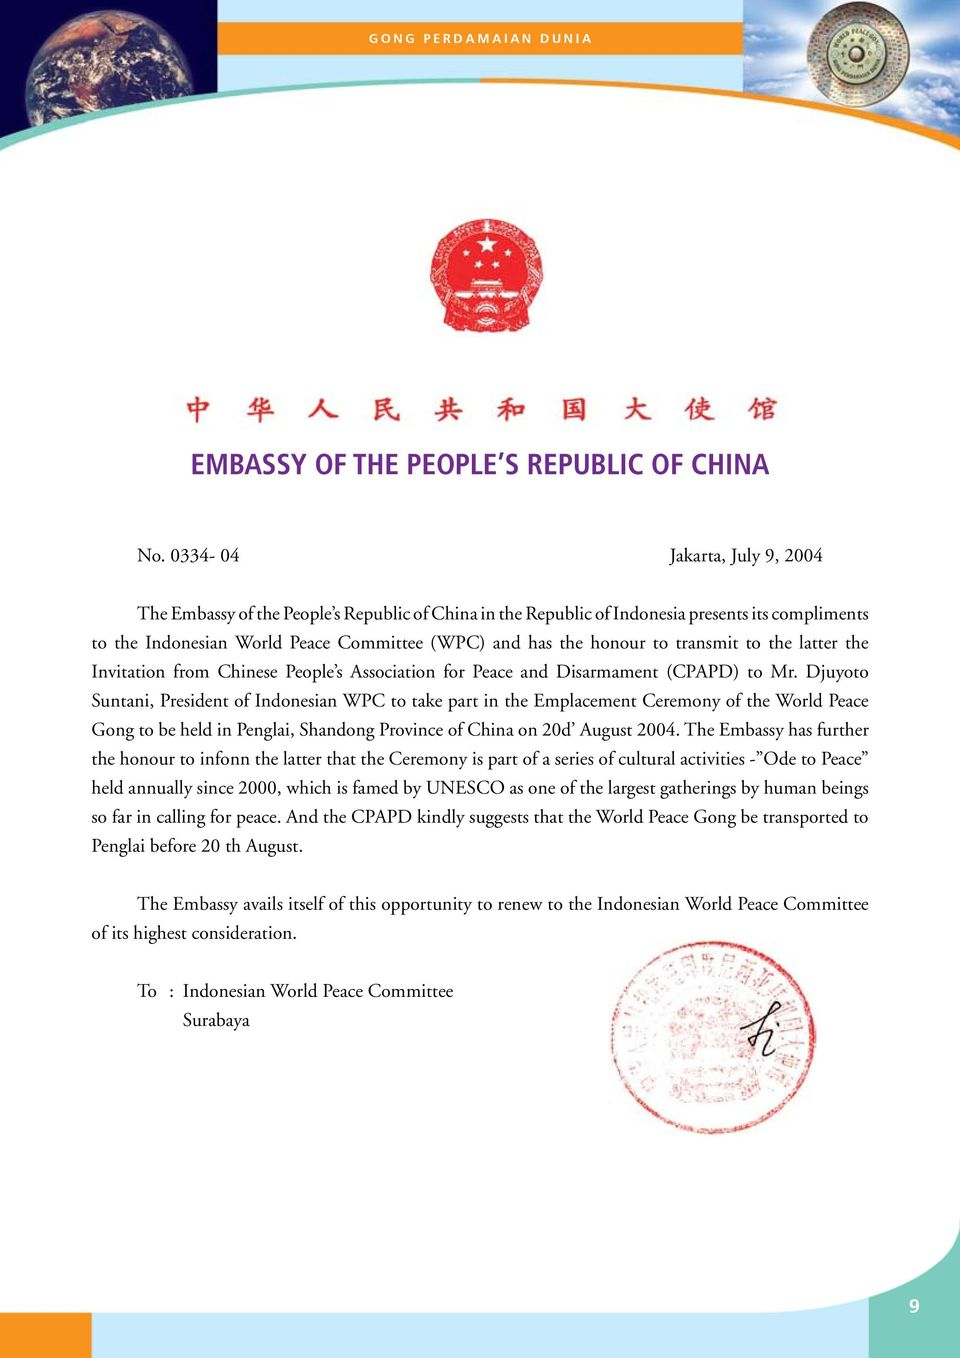 transmit to the latter the Invitation from Chinese People s Association for Peace and Disarmament (CPAPD) to Mr.